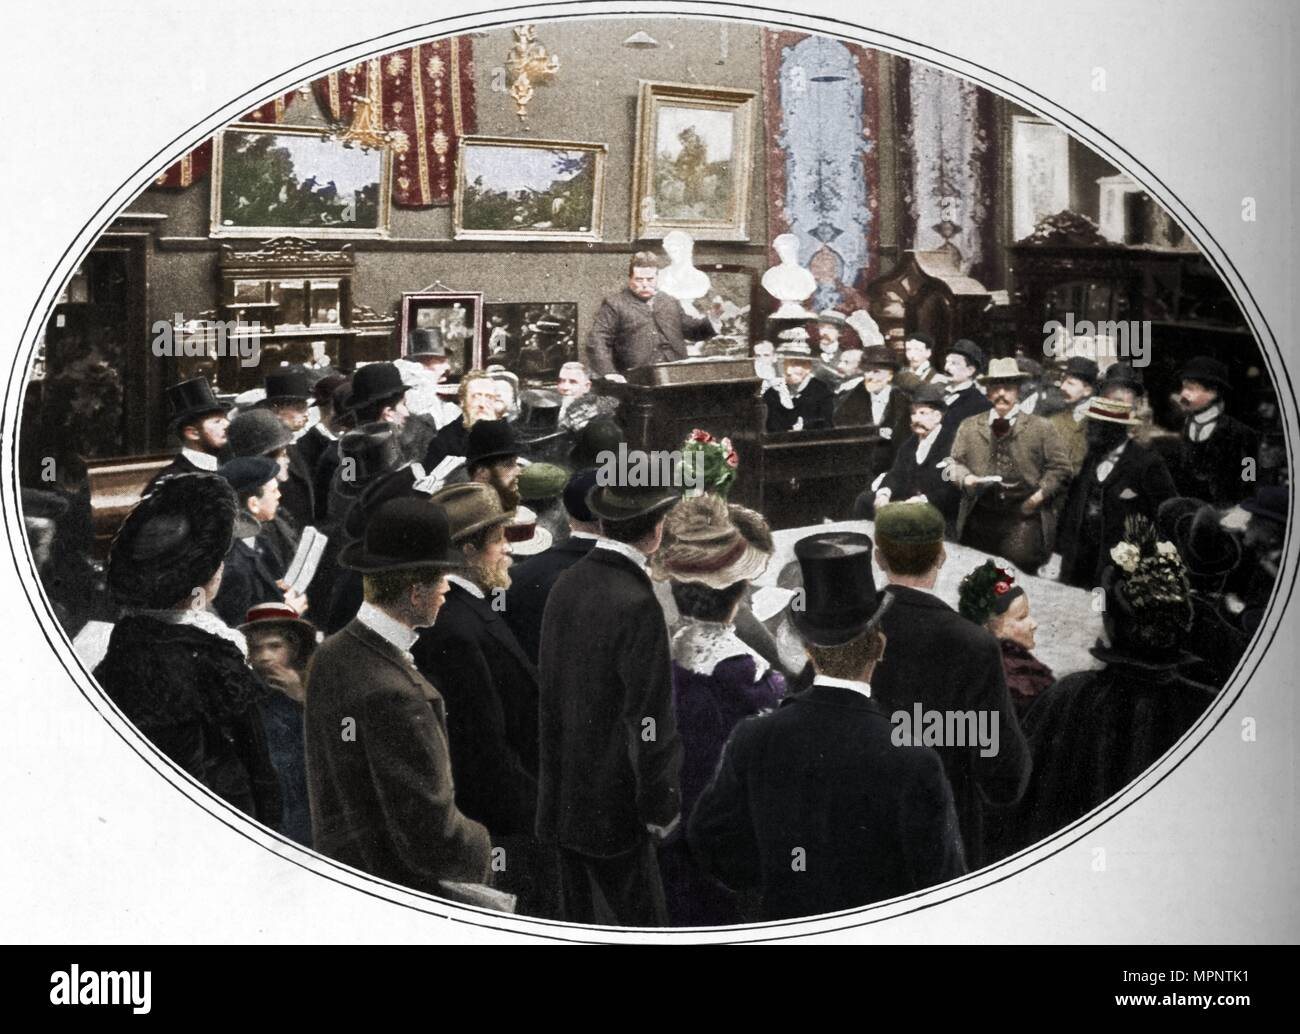 Auction in progress at Phillips auctioneers, London, c1901 (1901). Artist: Unknown. - Stock Image